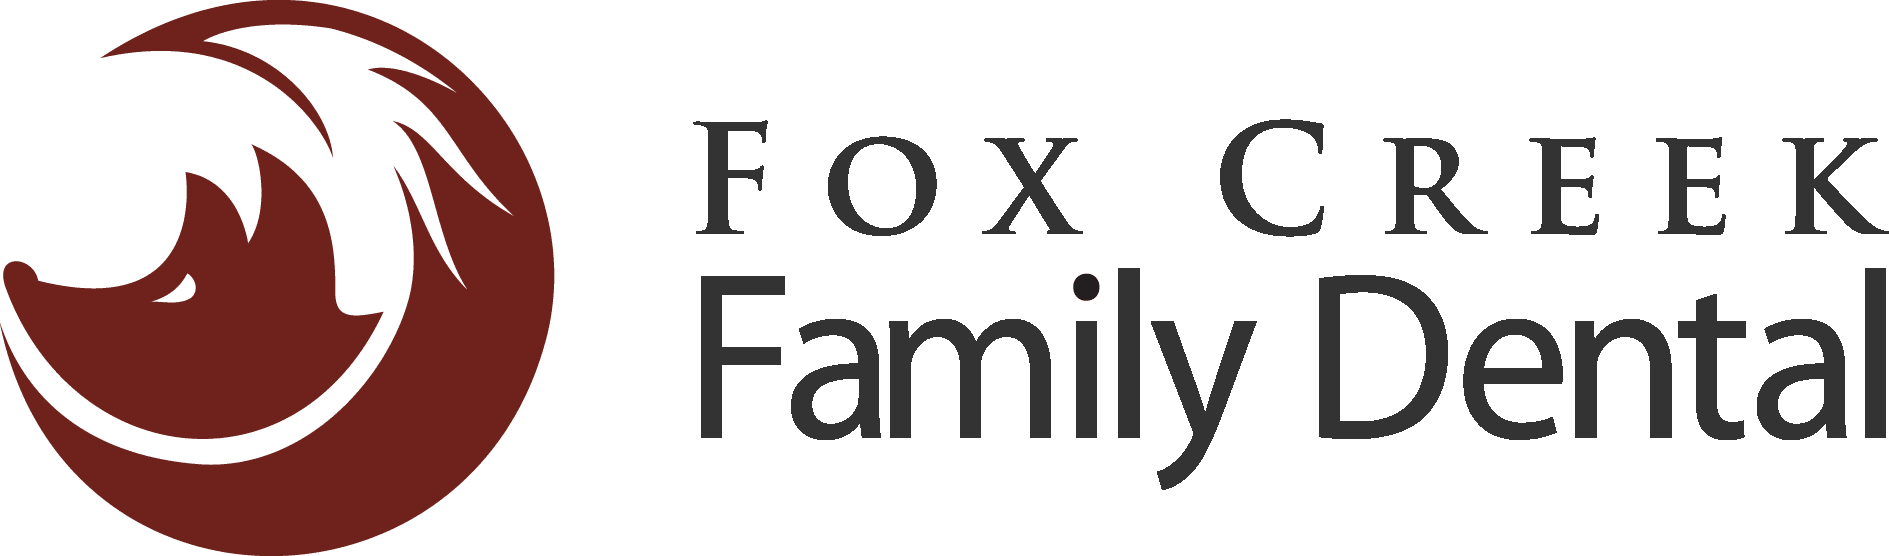 Fox Creek Family Dental